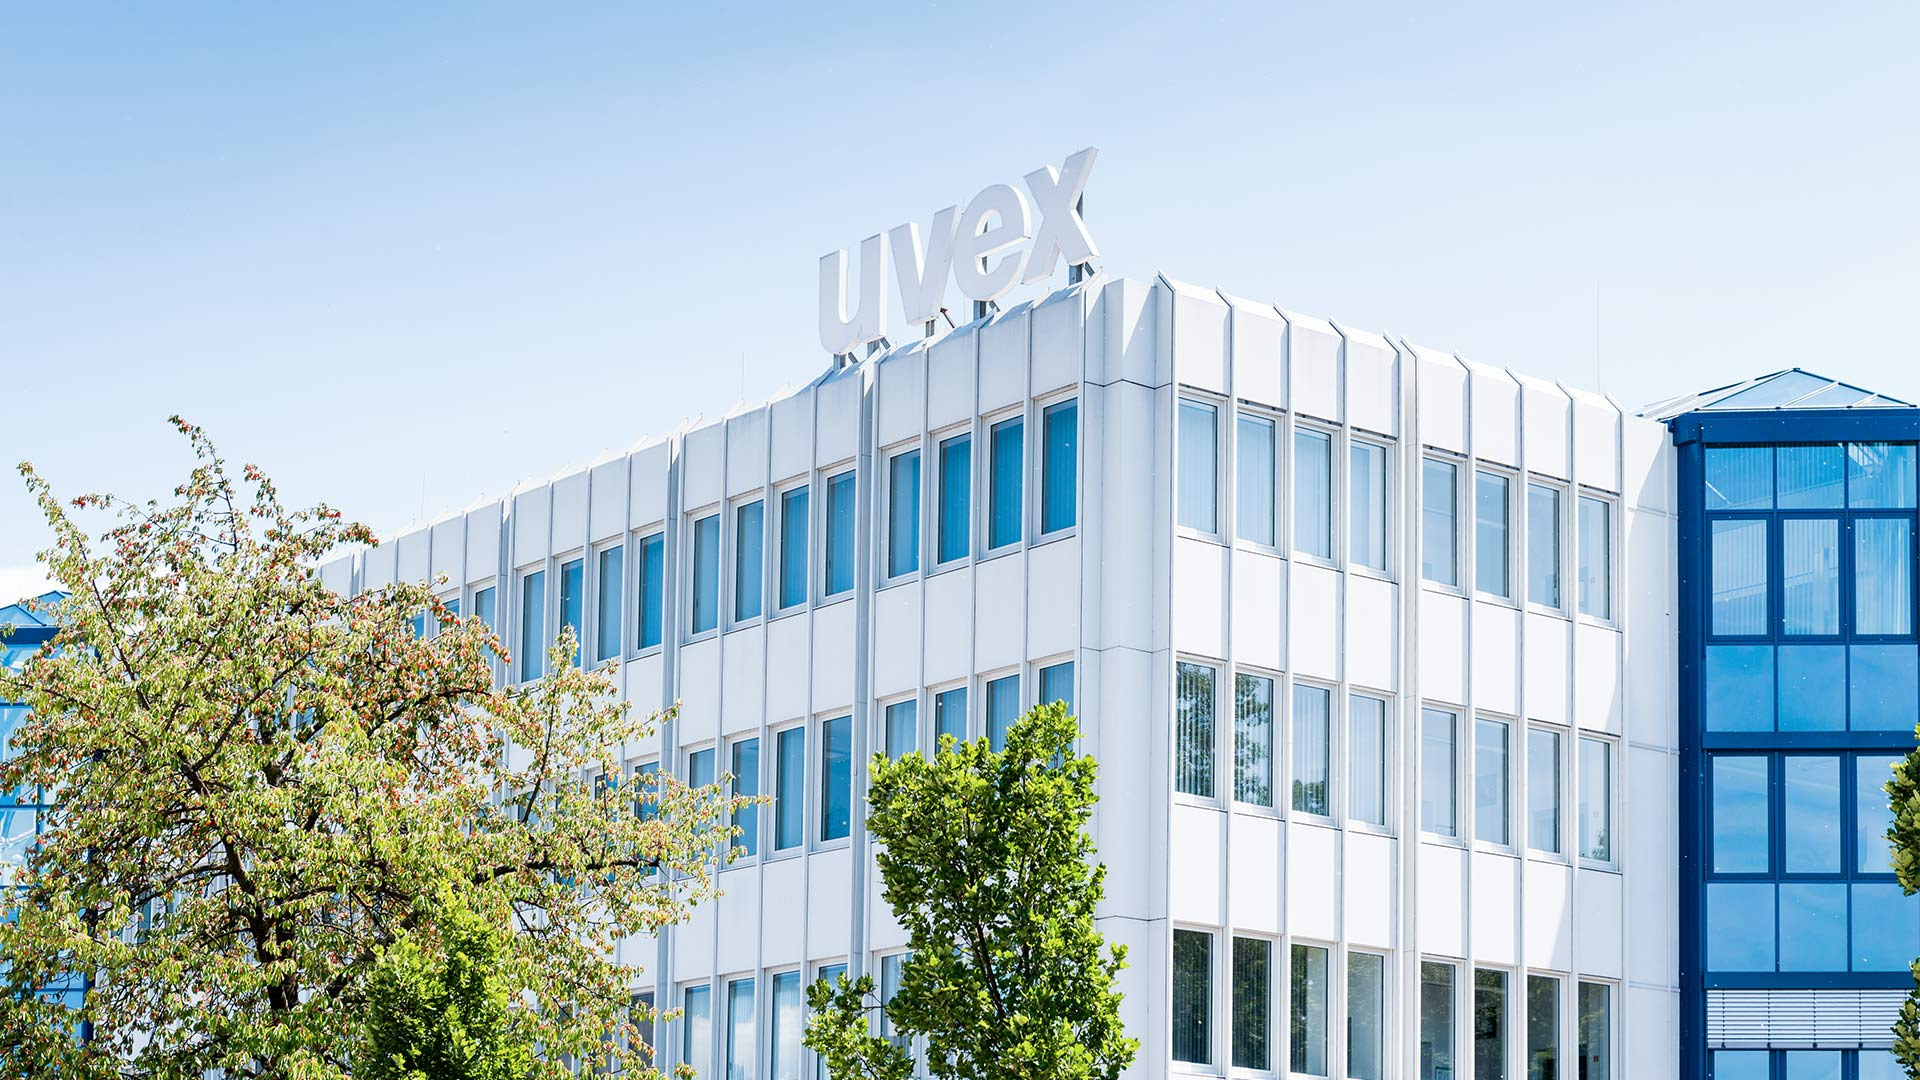 uvex group headquater